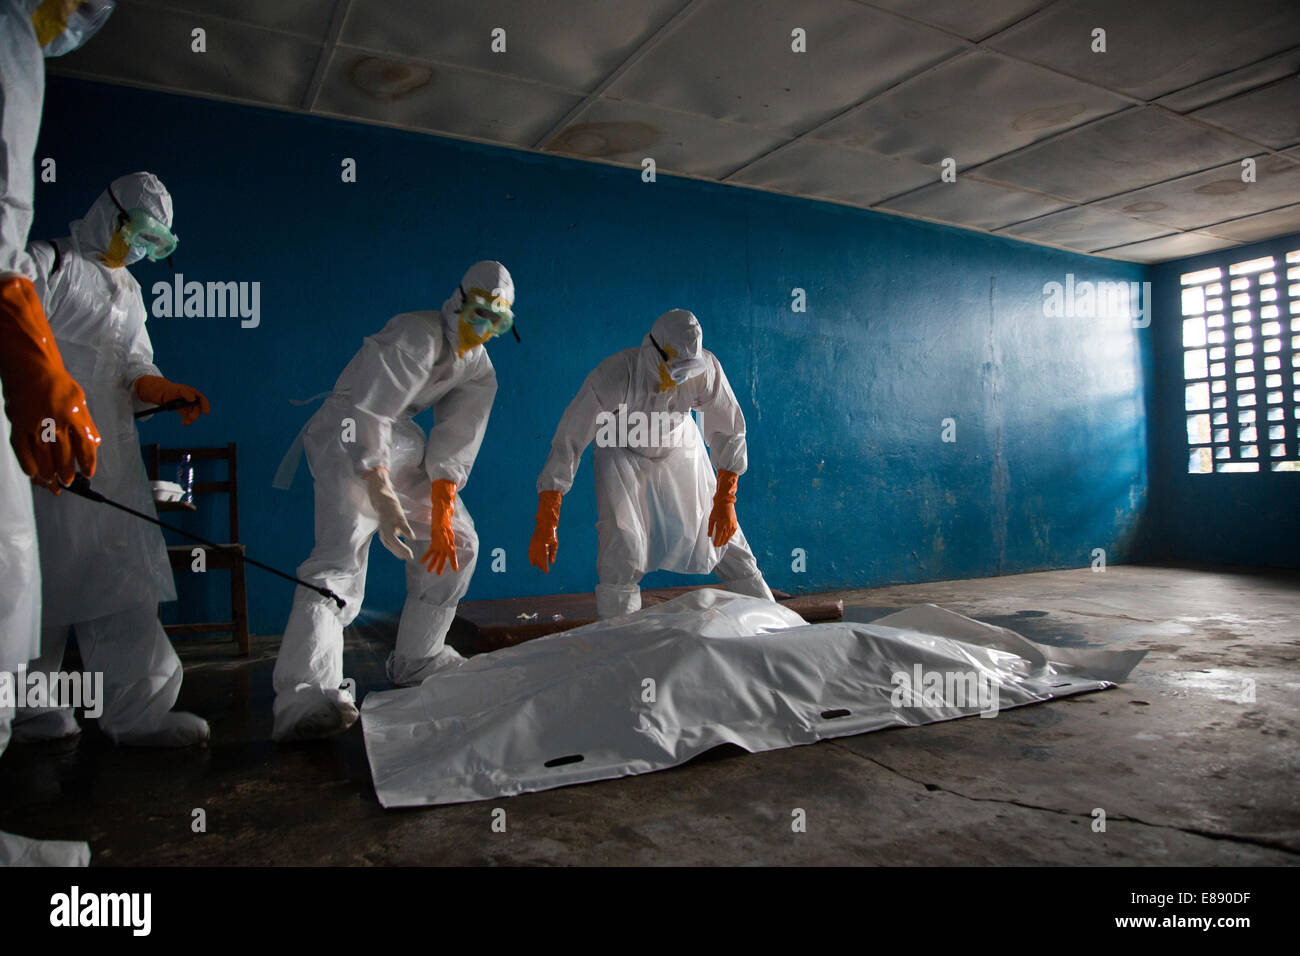 Body removal team preps a body to be removed from the West Pont facility. West Point is a district of Monrovia Liberia - Stock Image